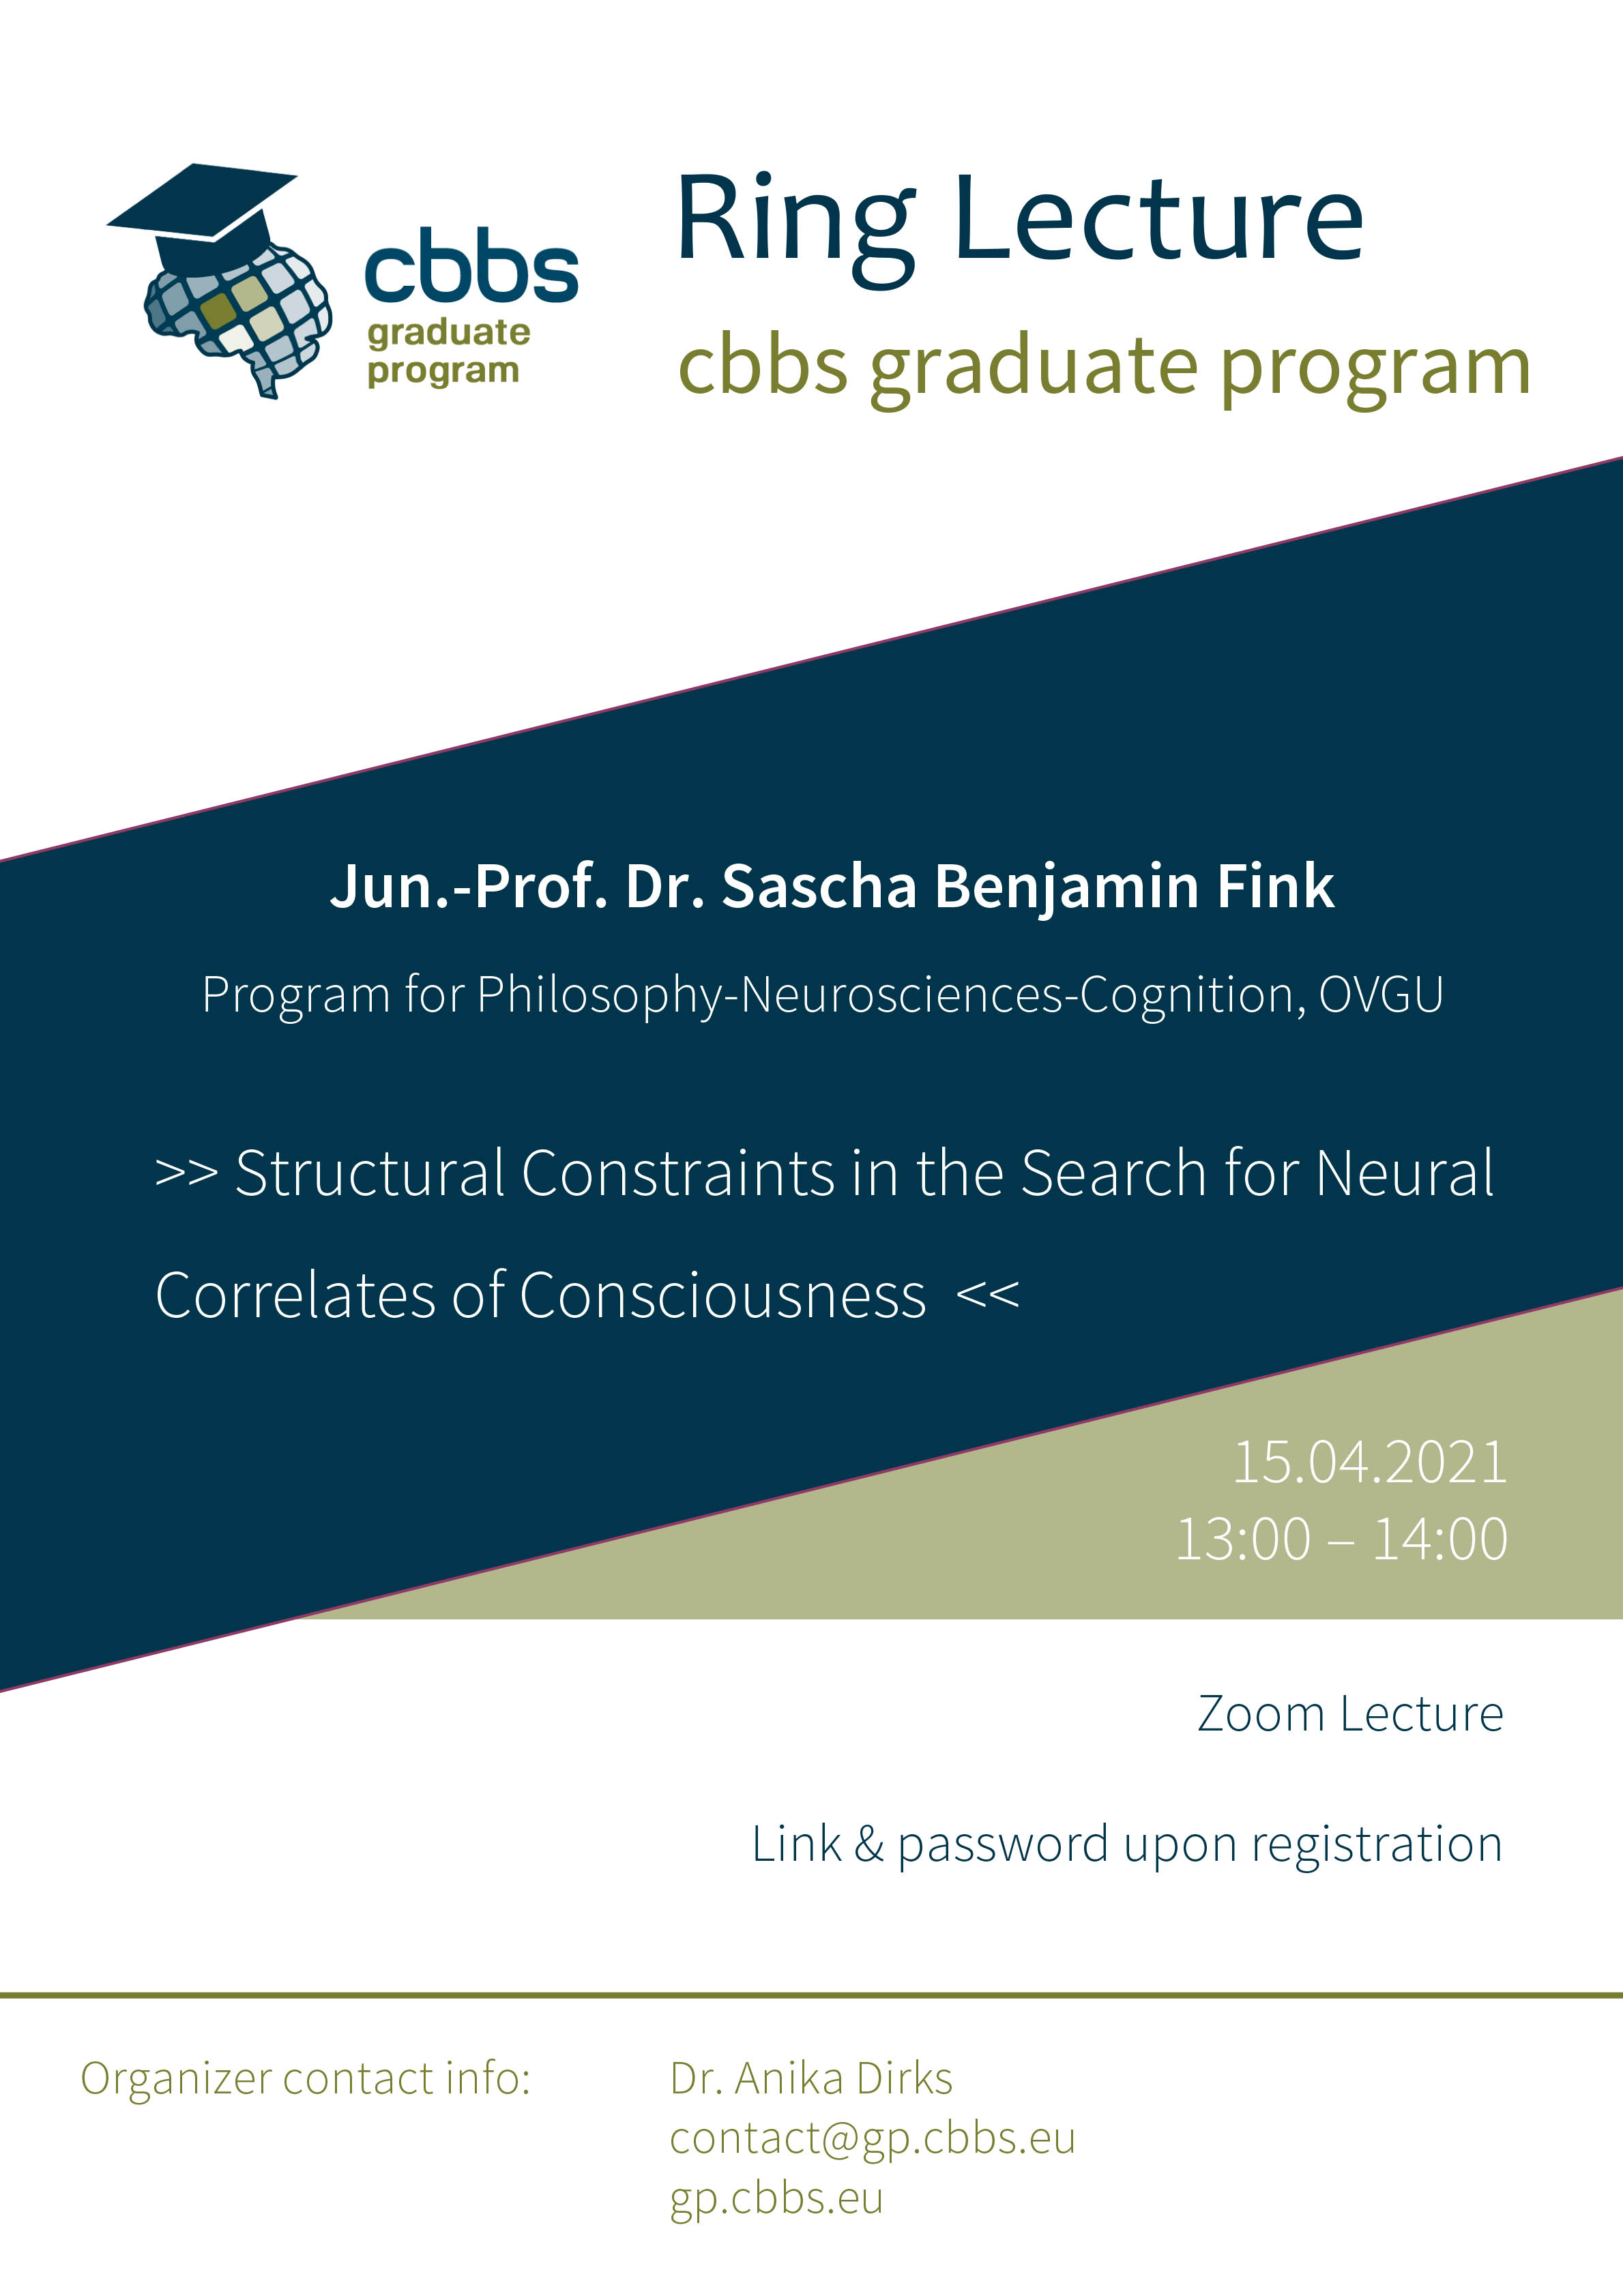 CBBS GP Ringlecture: Structural Constraints in the Search for Neural Correlates of Consciousness @ Zoom